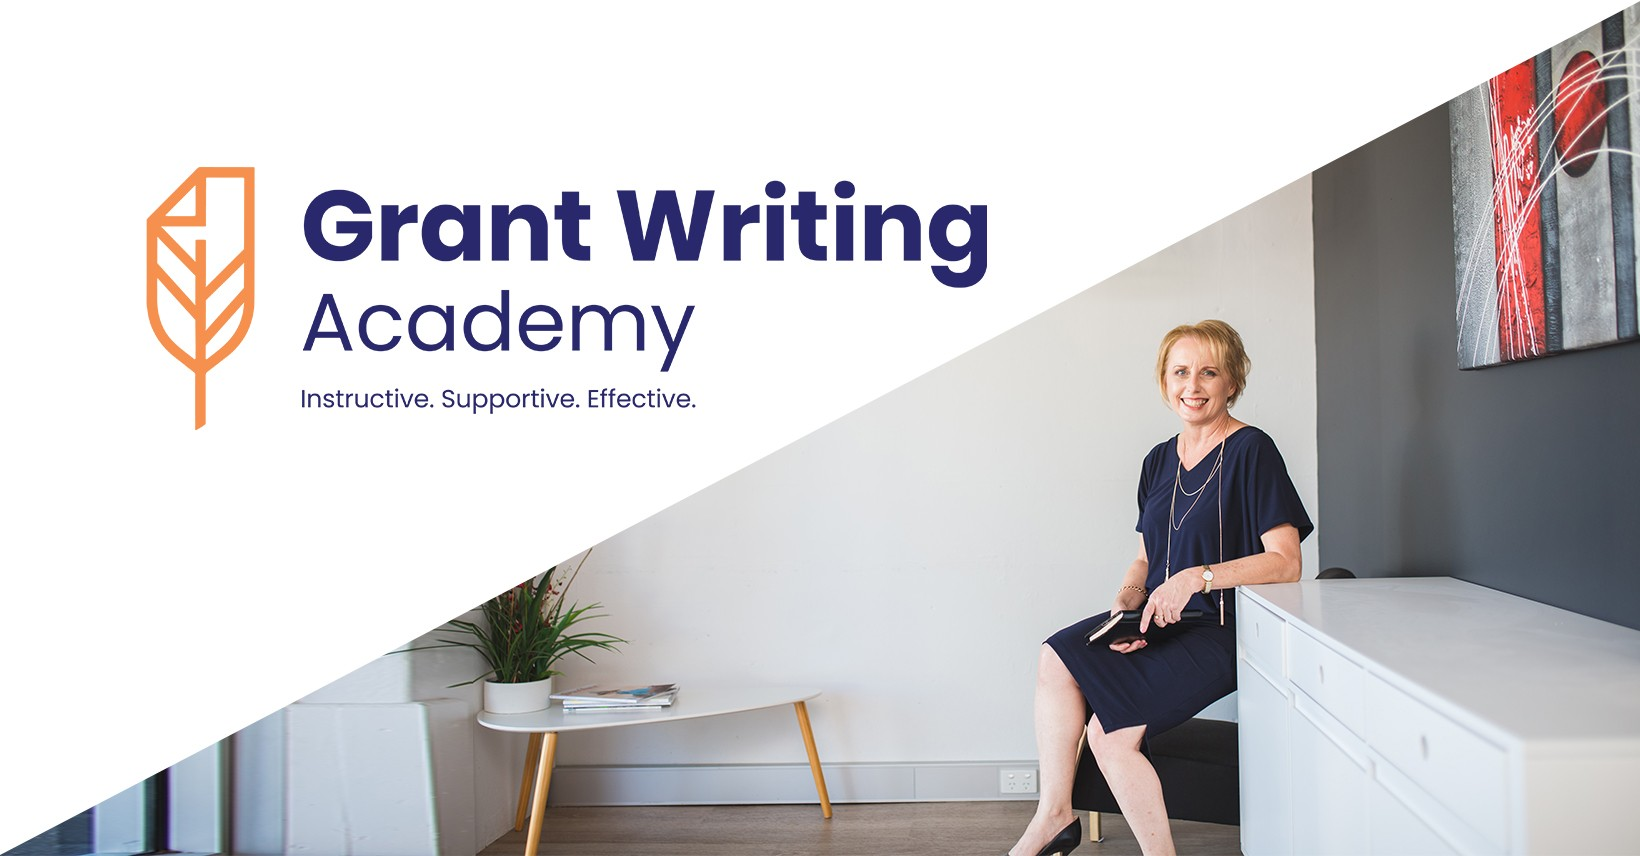 Grant Writing Academy Facebook Group, Grant Writing Academy Free Facebook Group